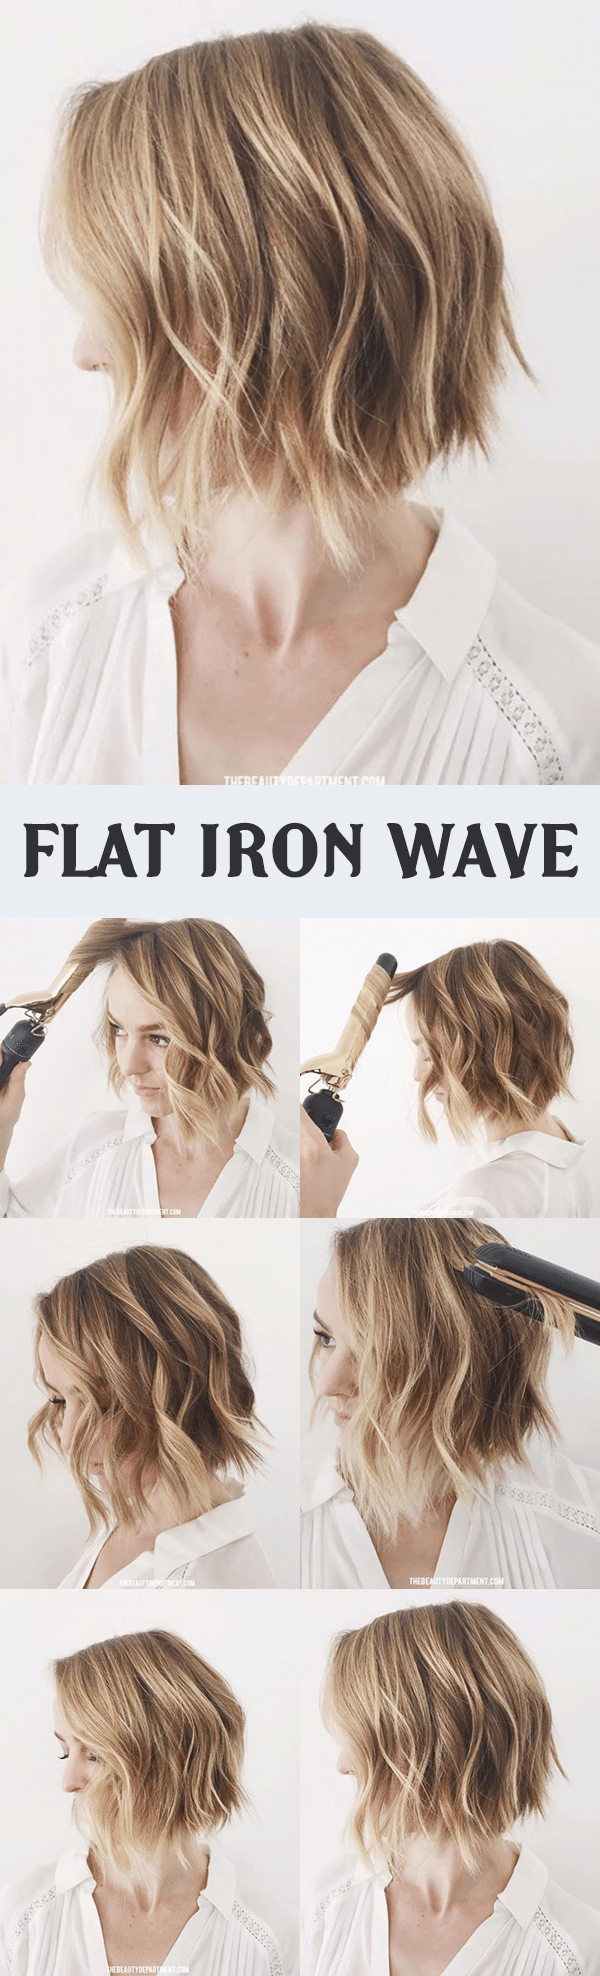 FLAT IRON WAVE HAIRSTYLE